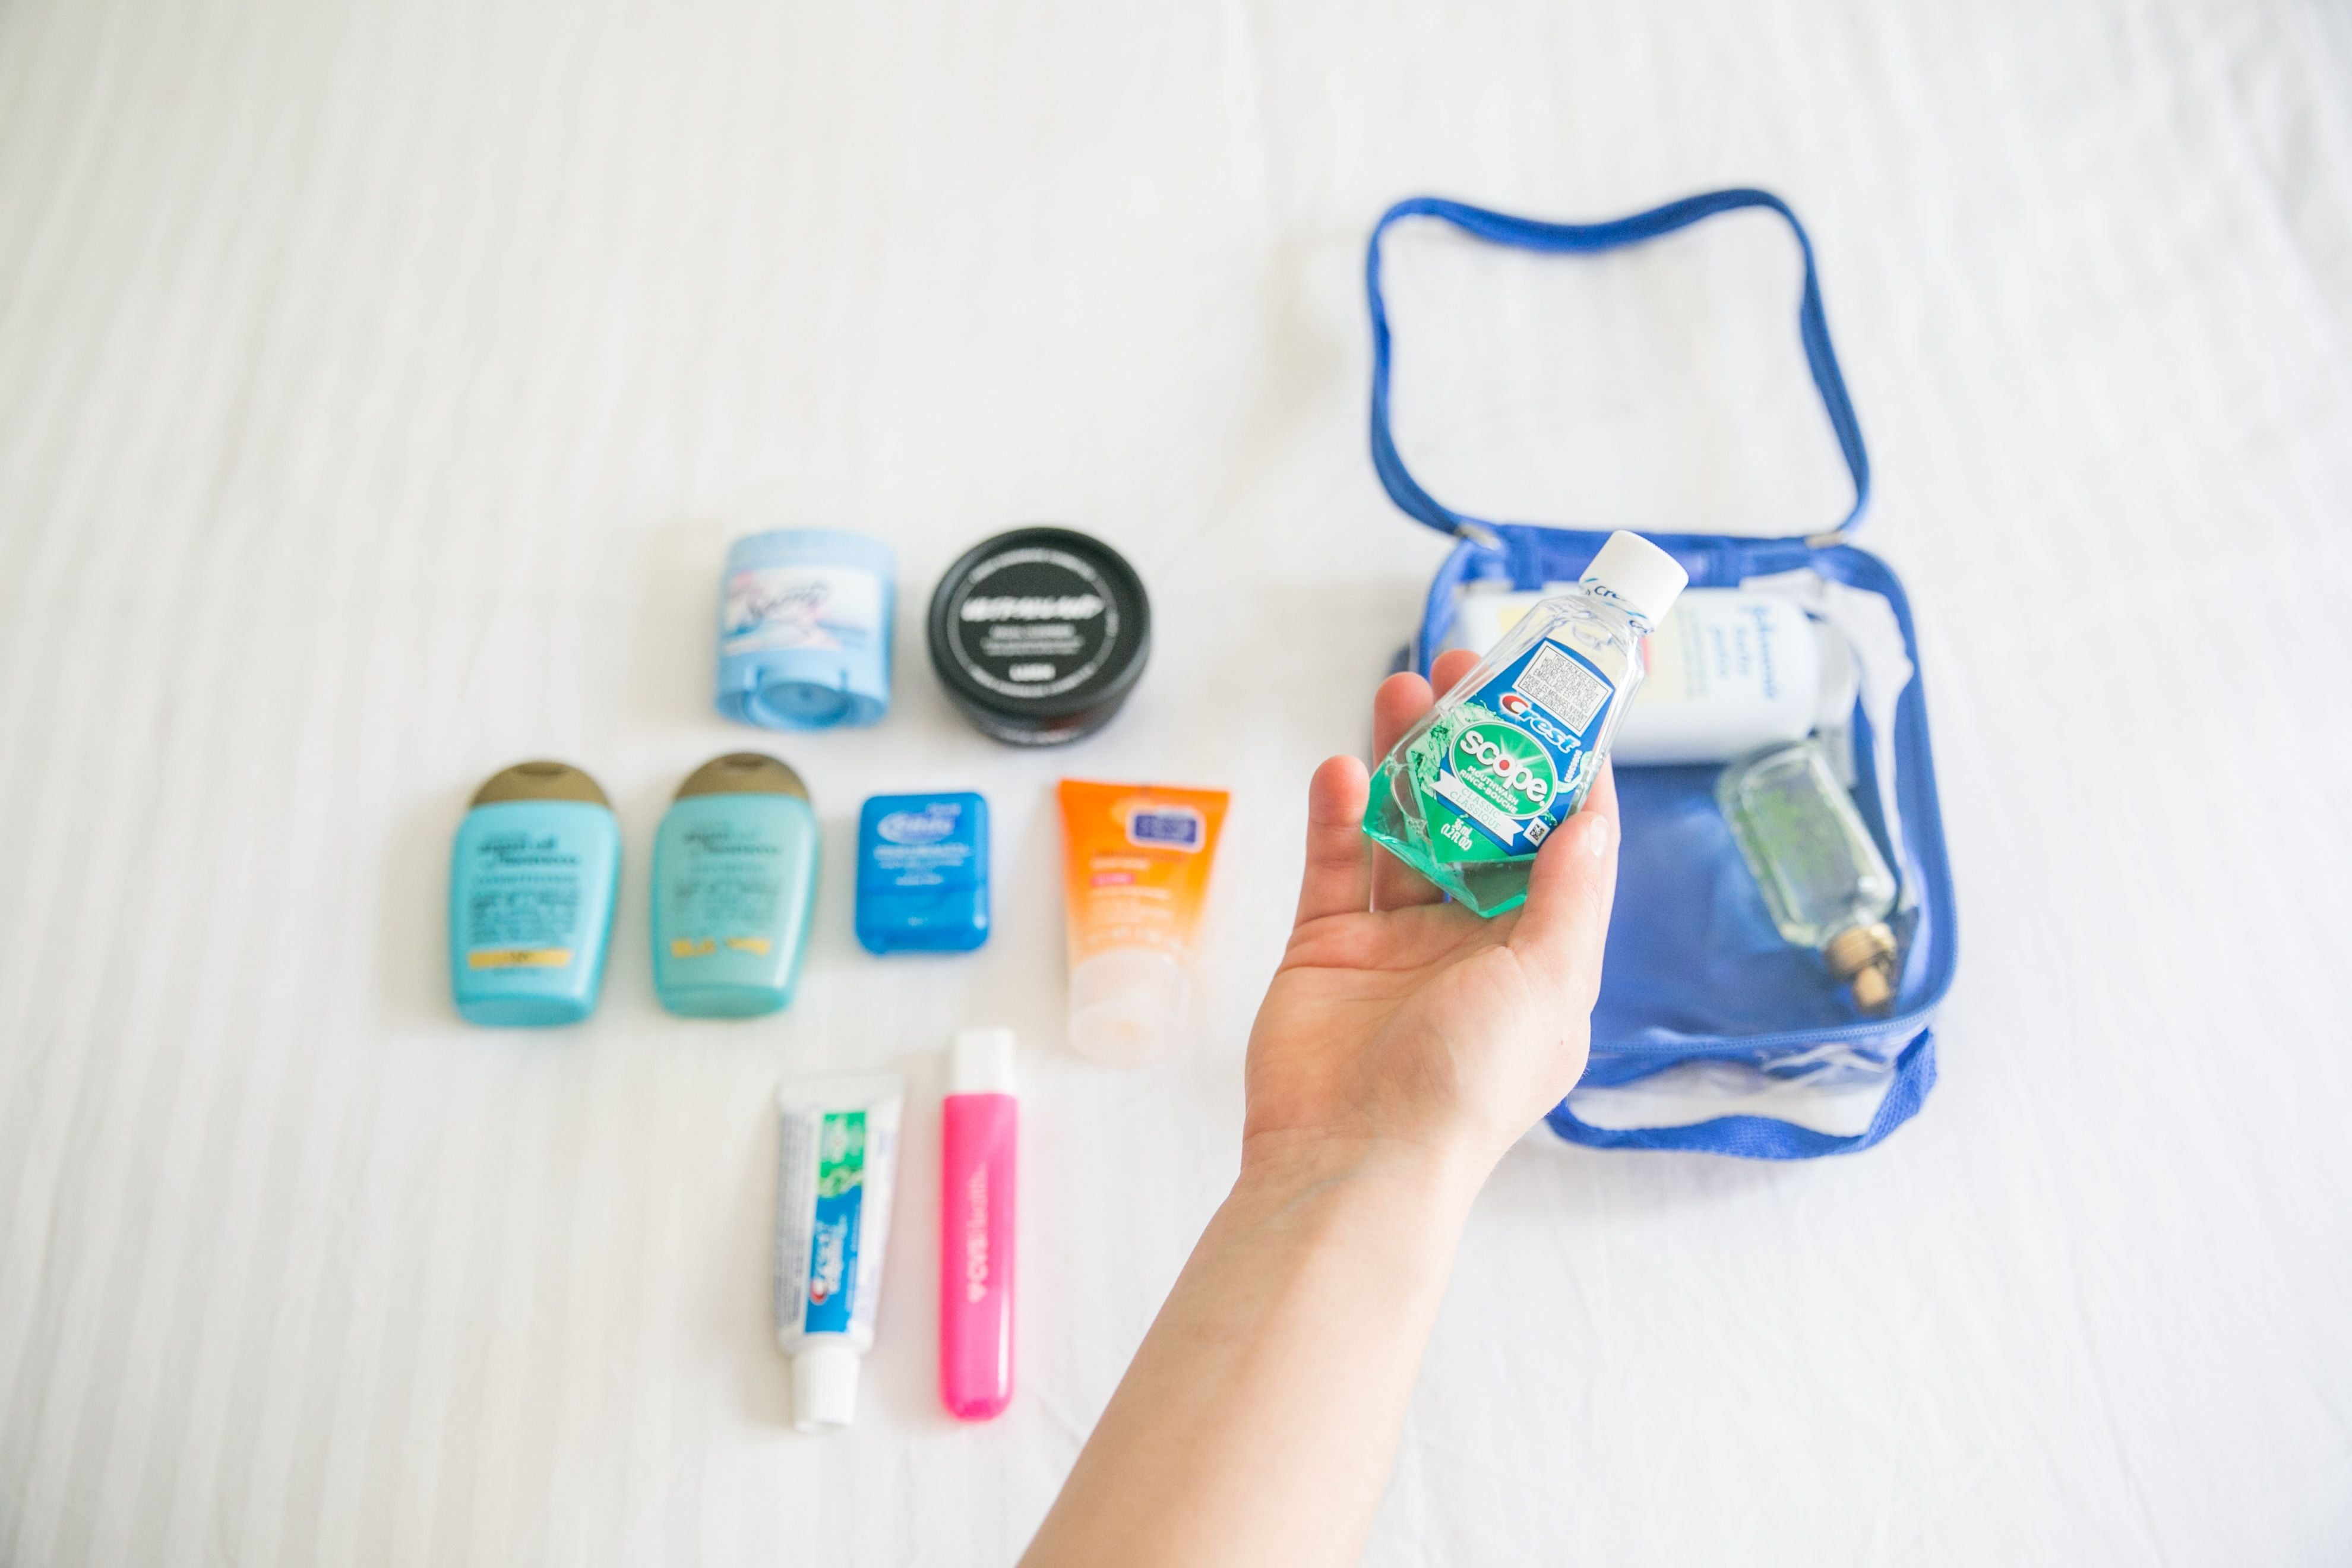 Travel size mouthwash and other toiletries